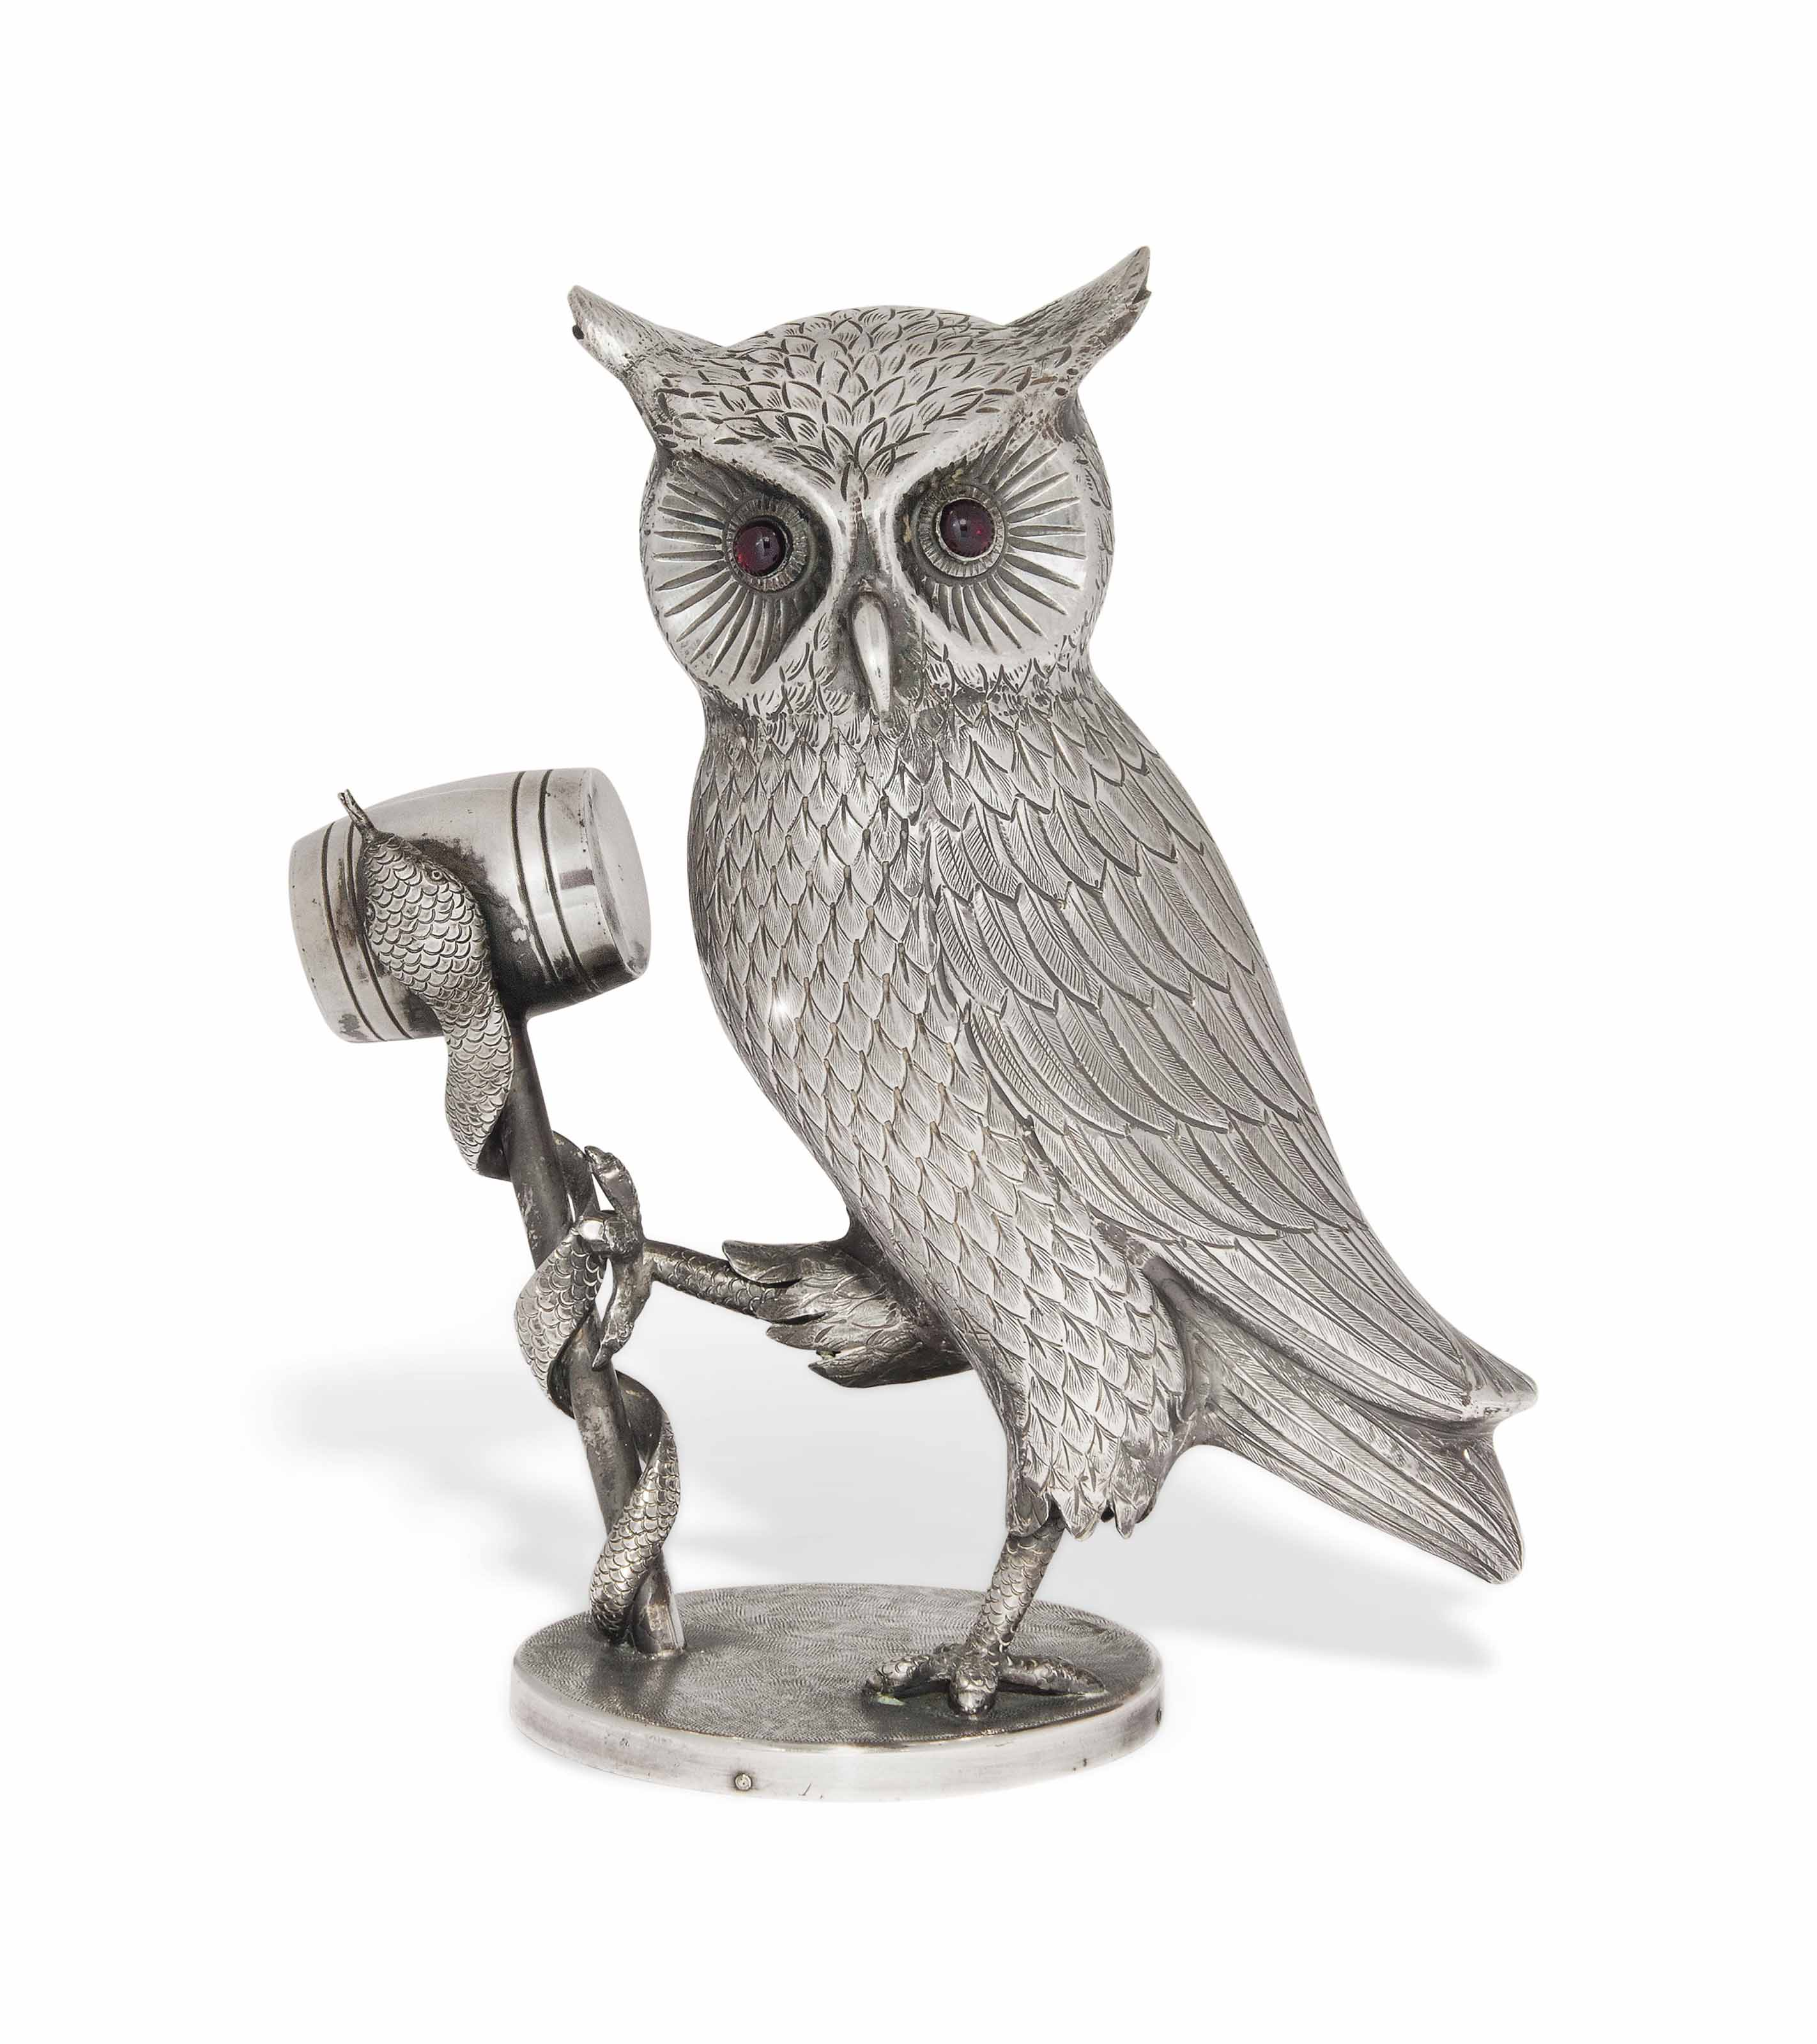 A MODERN SILVER STATUE OF AN OWL SUPPORTING A SERPENT WRAPPED AROUND A MALLET